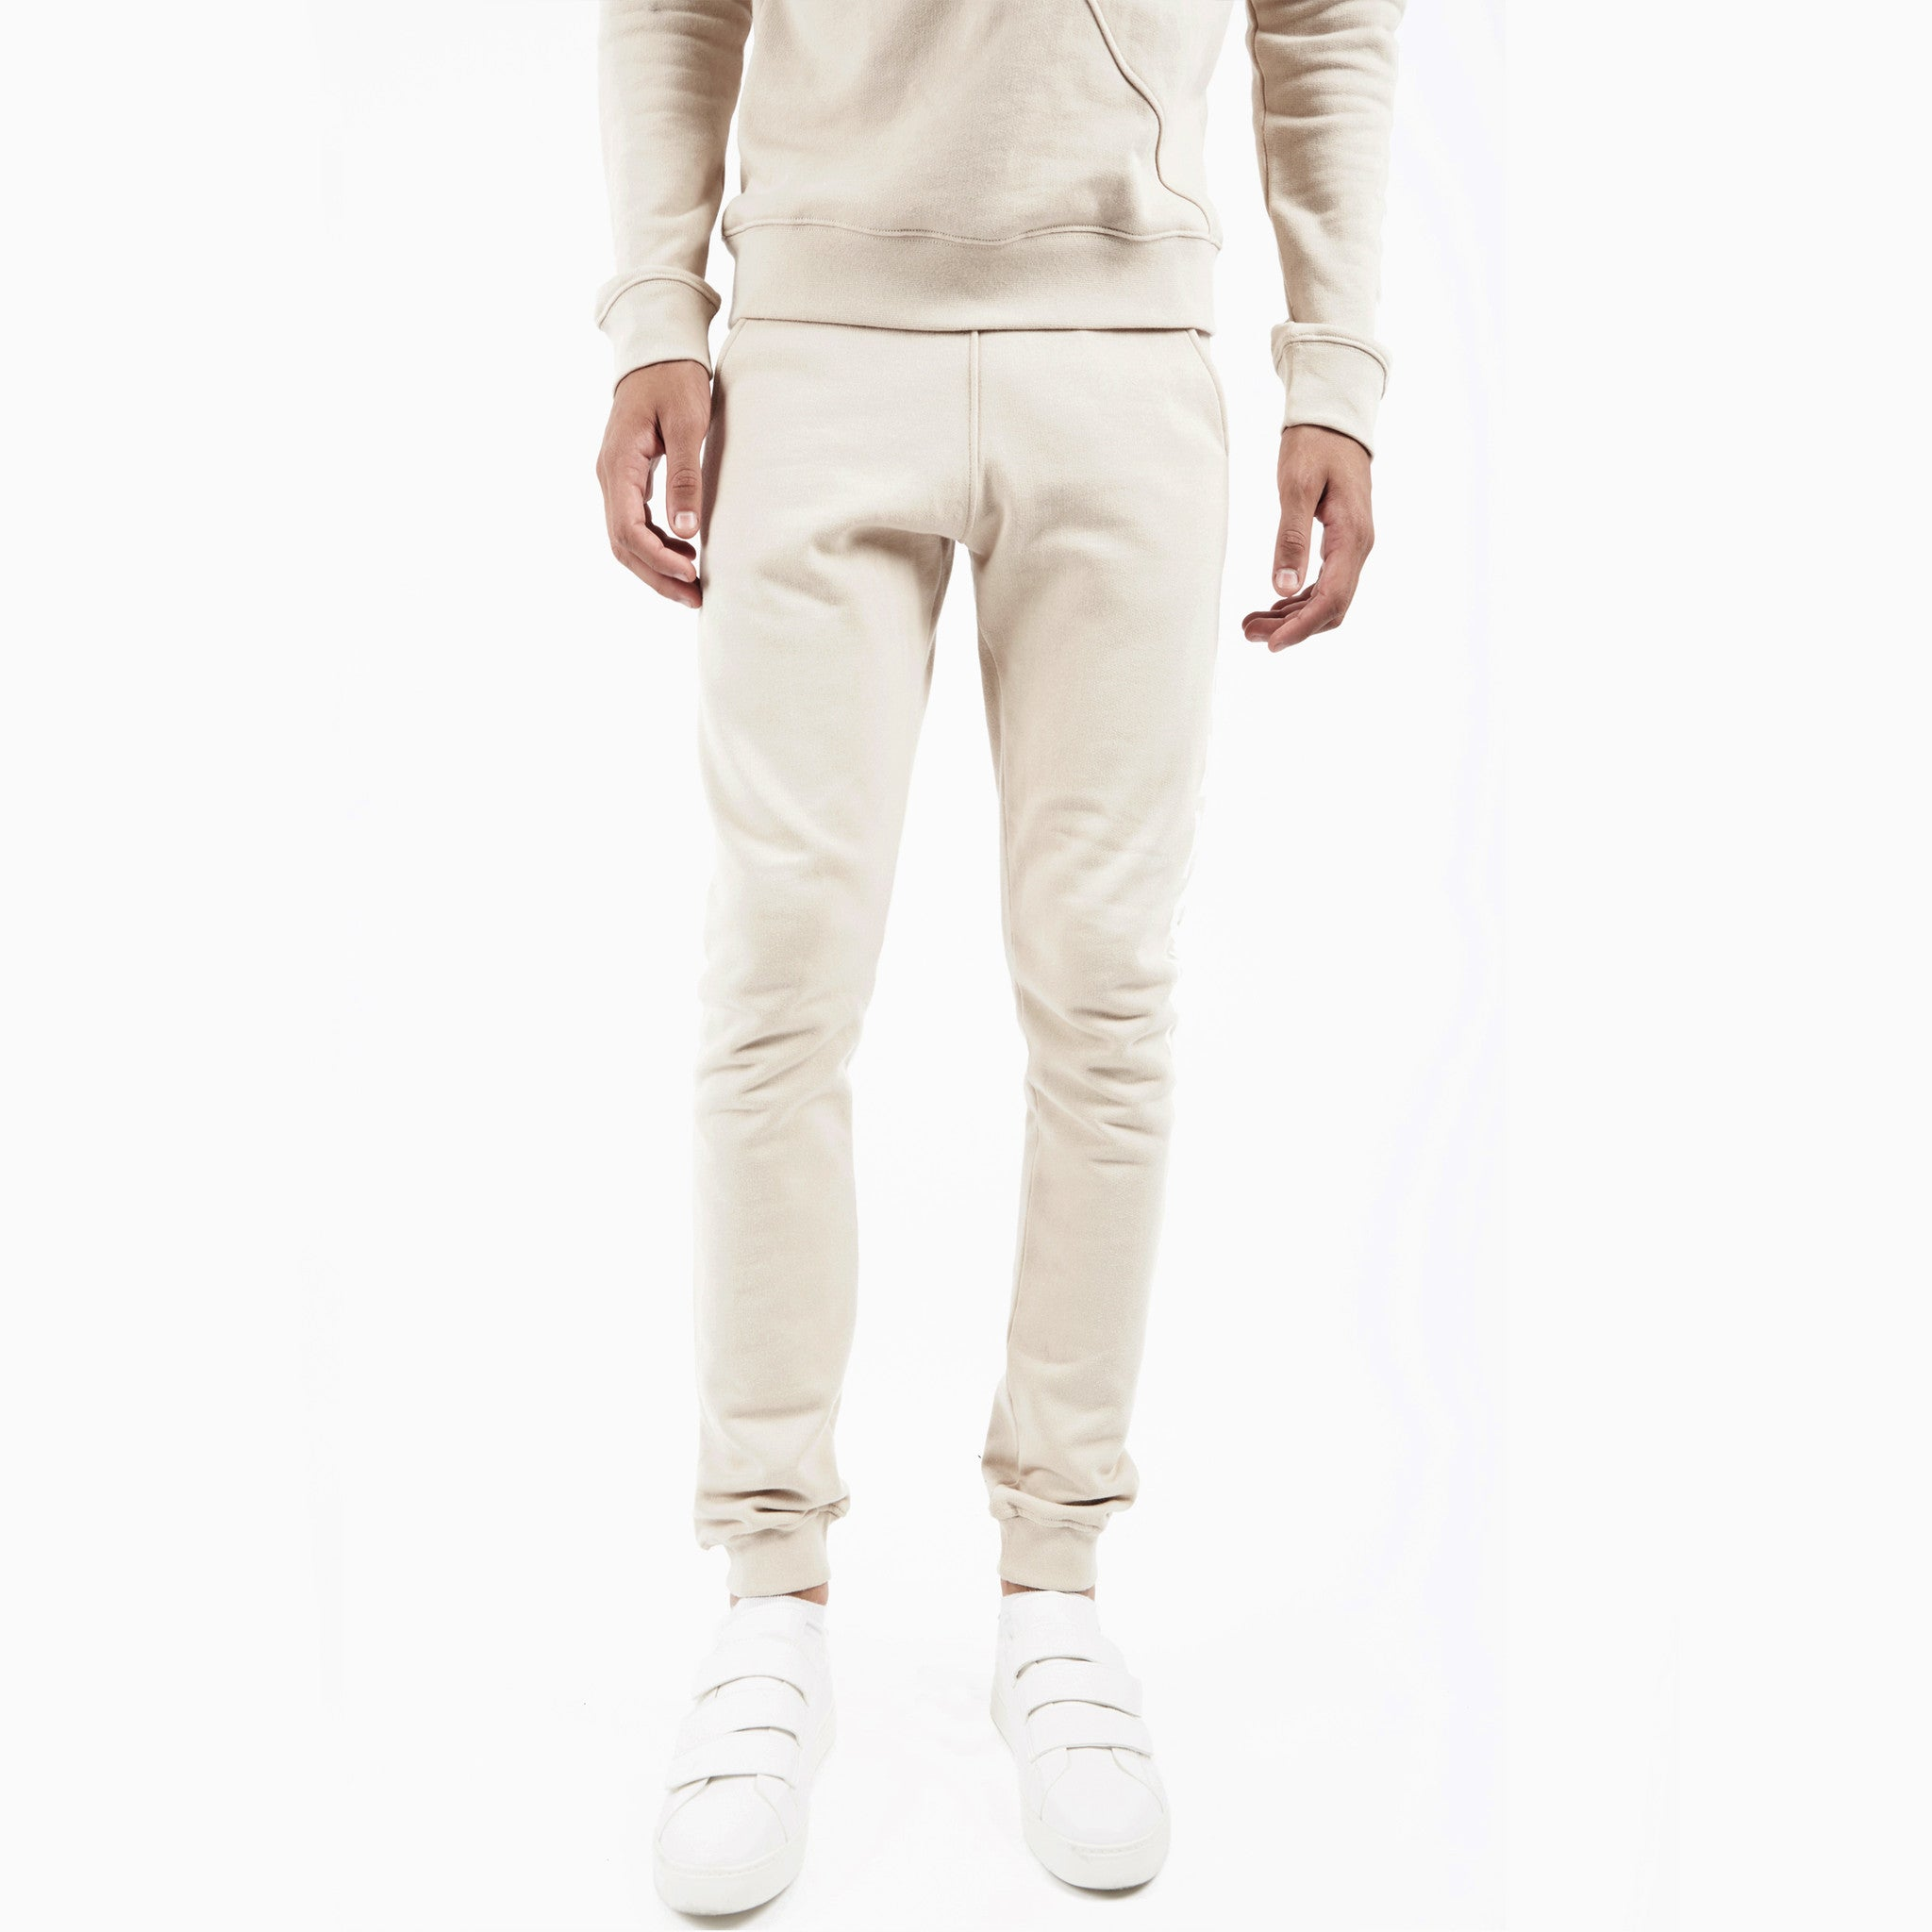 TR351 Essential Printed Joggers - Beige - underated london - underatedco - 4